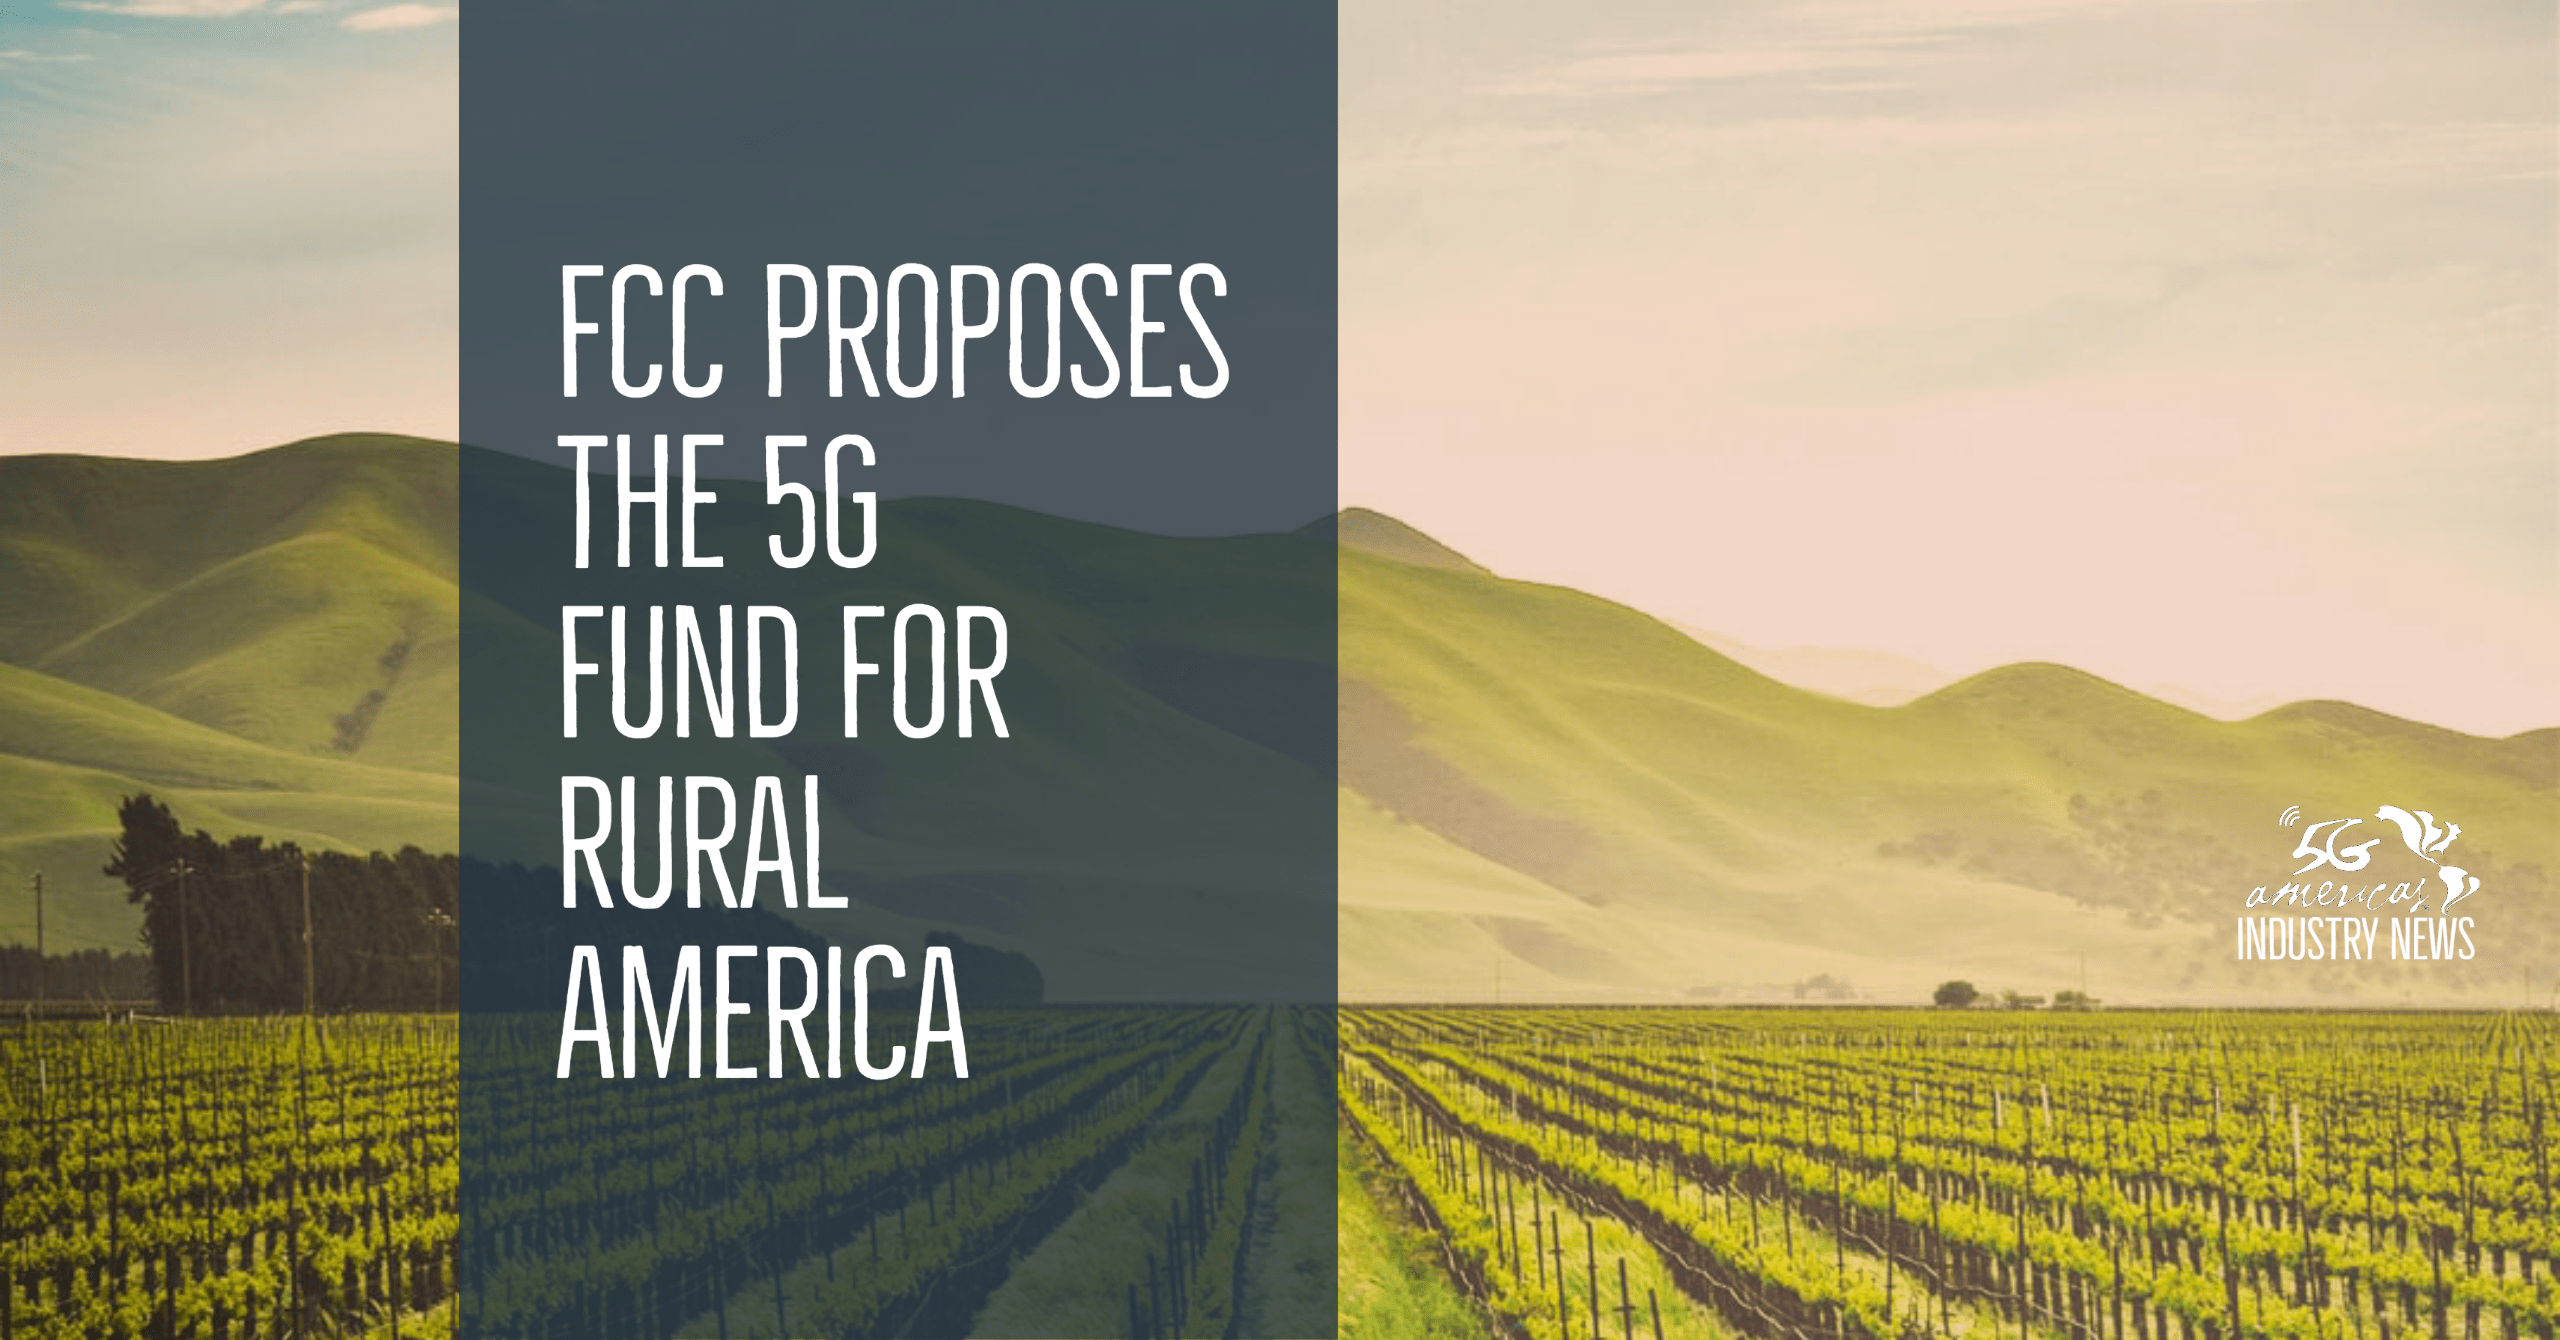 FCC Proposes the 5G Fund for Rural America